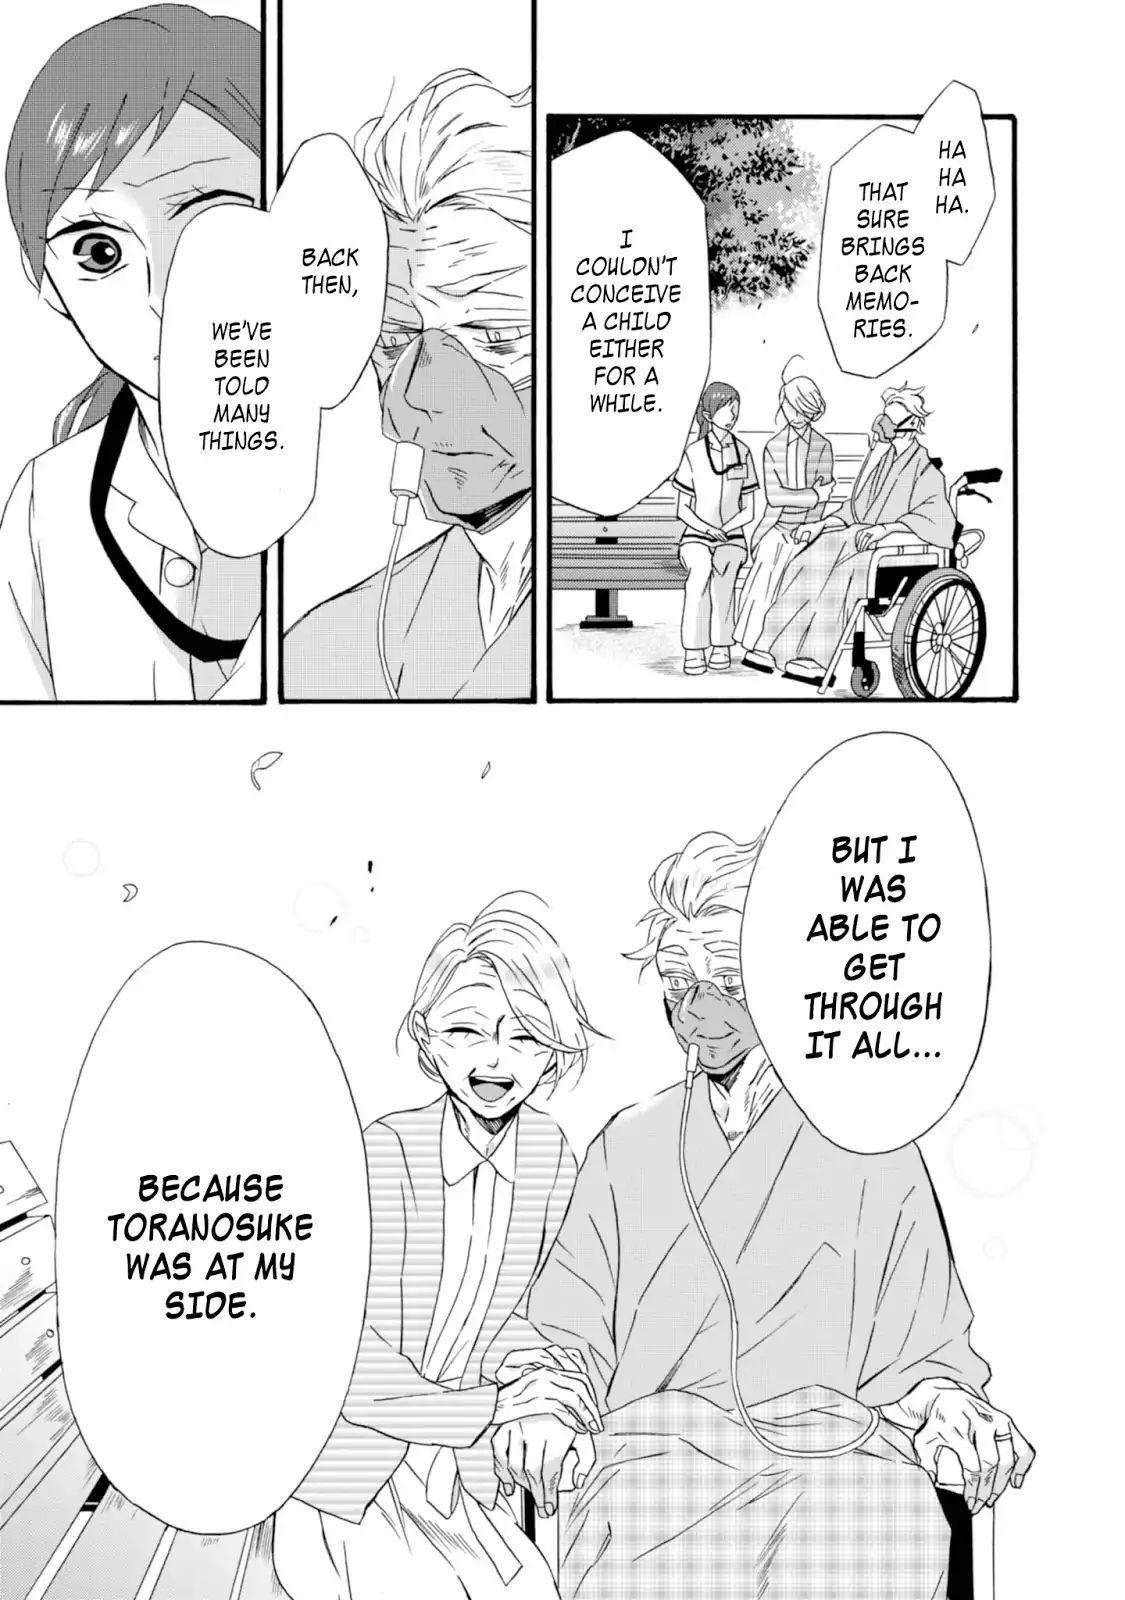 Will You Marry Me Again If You Are Reborn? Vol.2 Chapter 9: When I'm With You page 3 - Mangakakalots.com